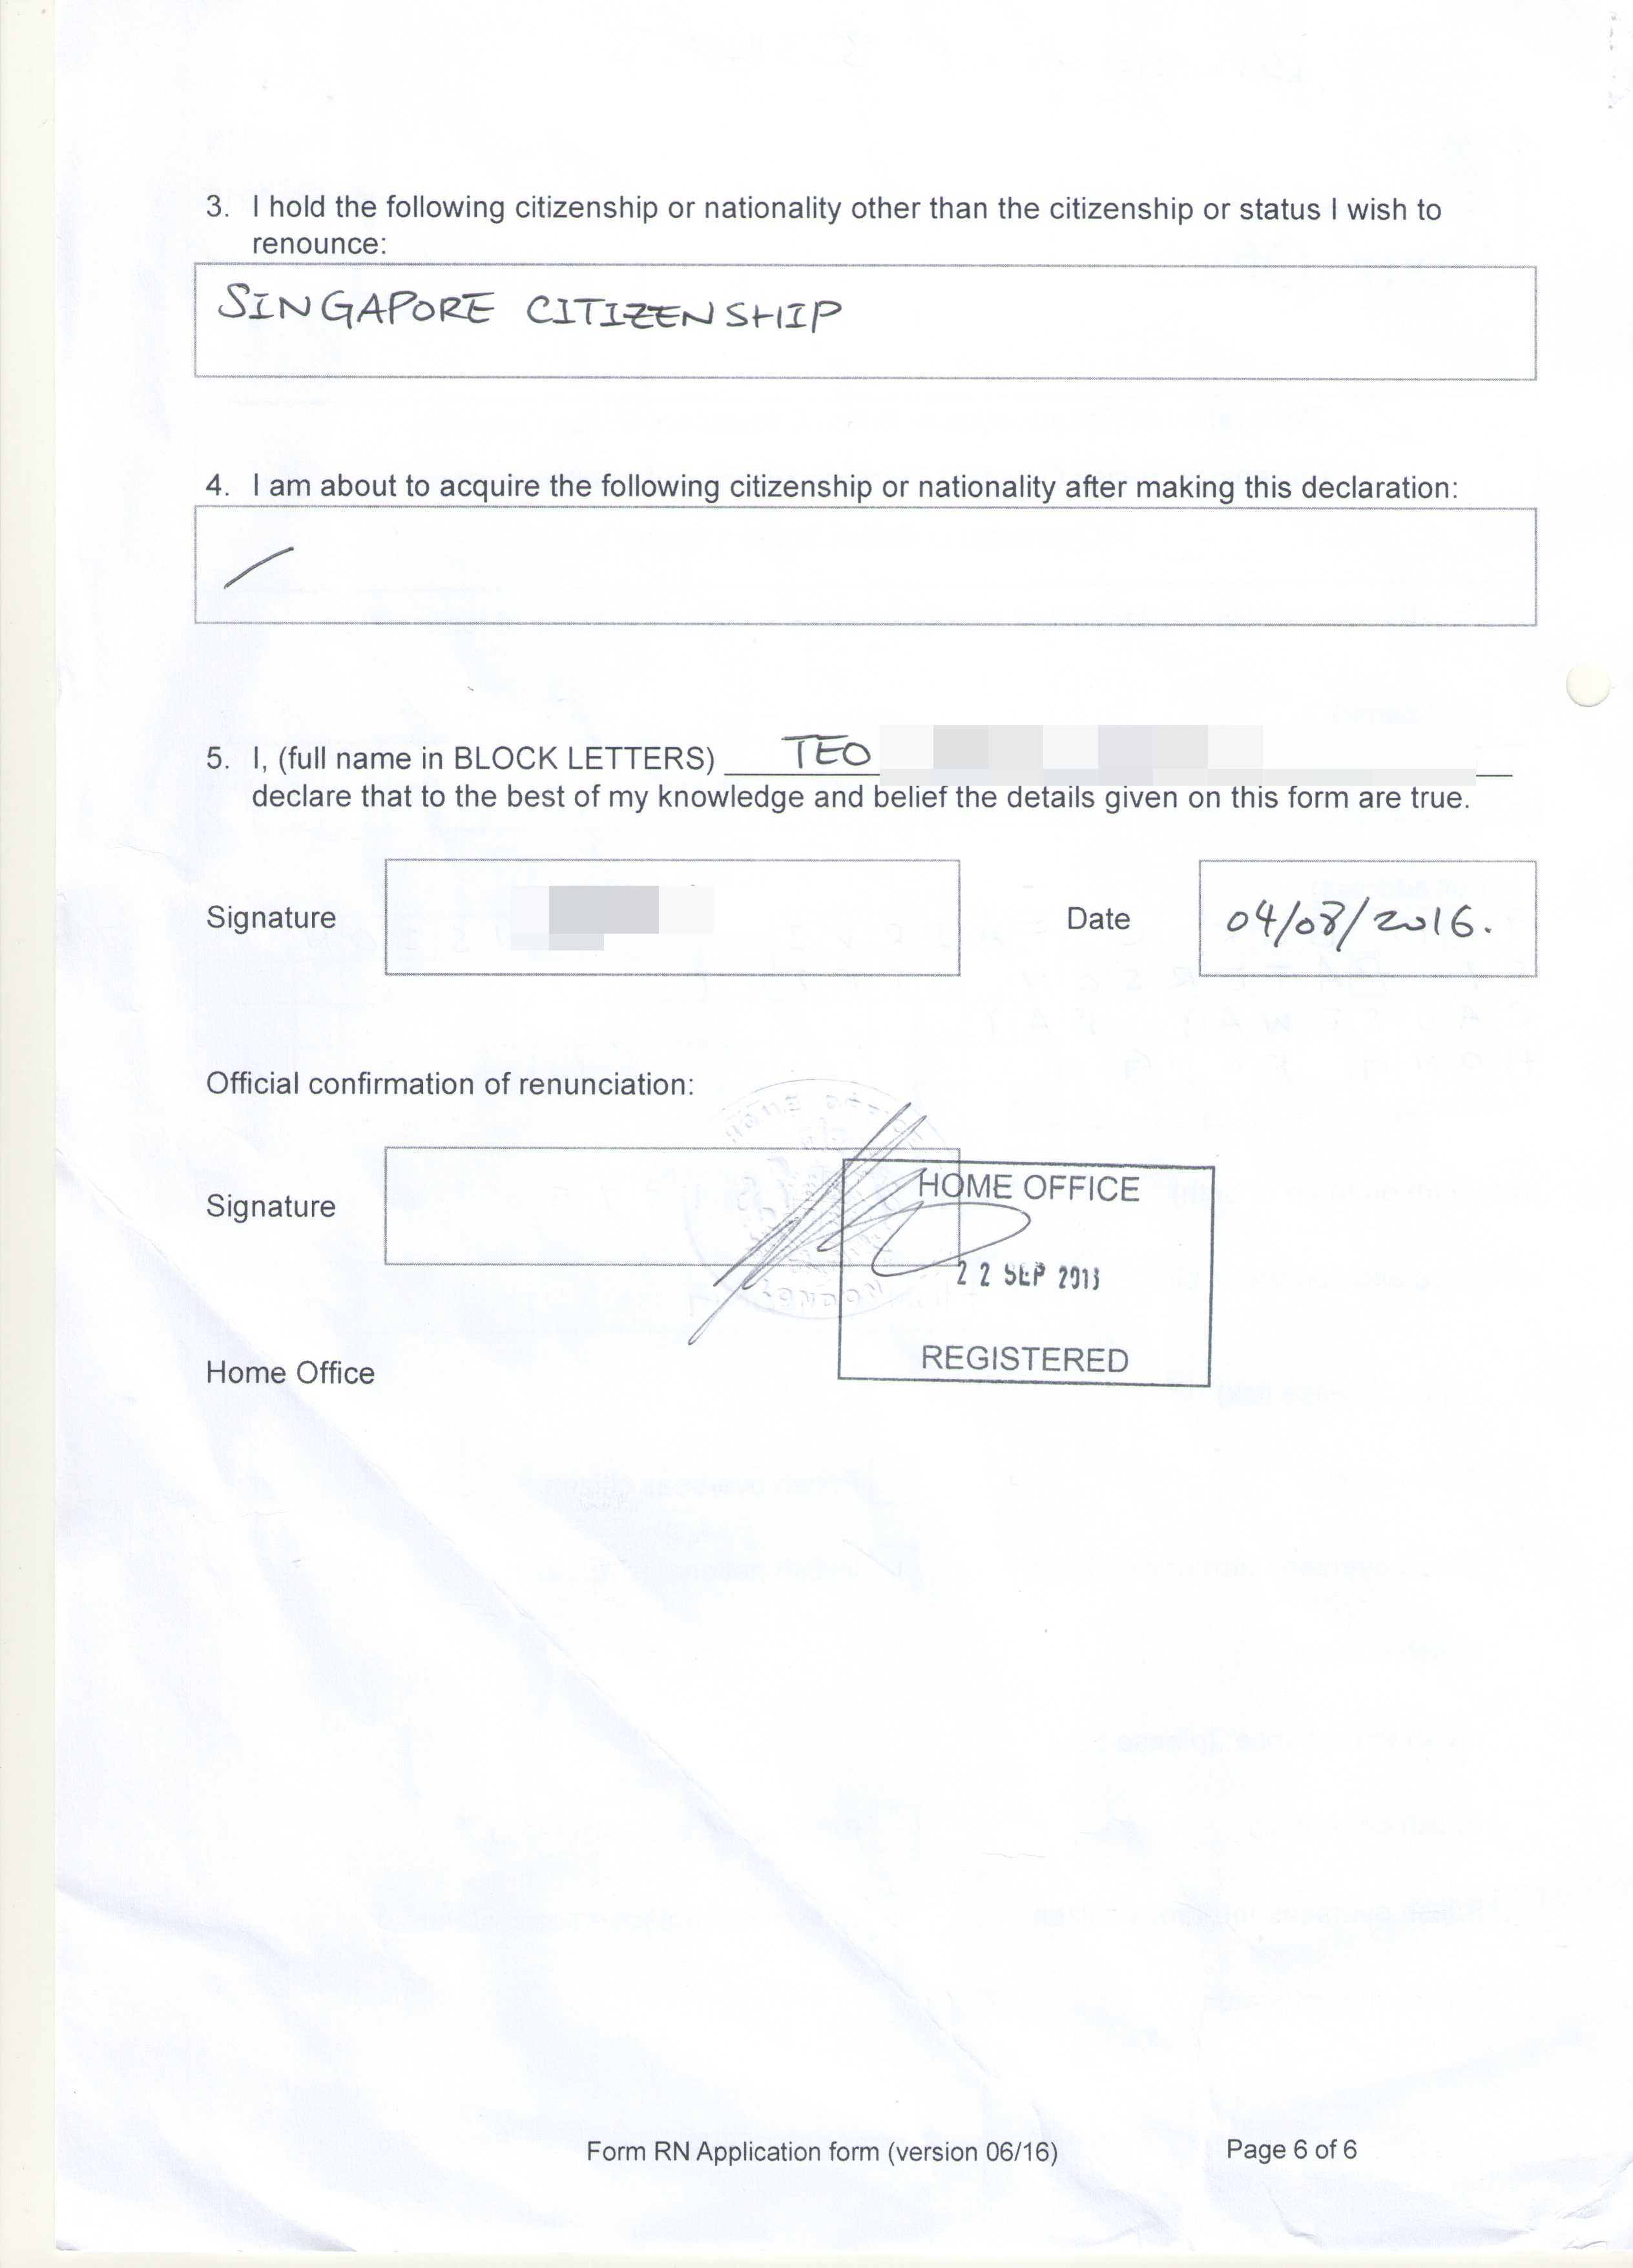 Andrew Leung's British citizenship renunciation document